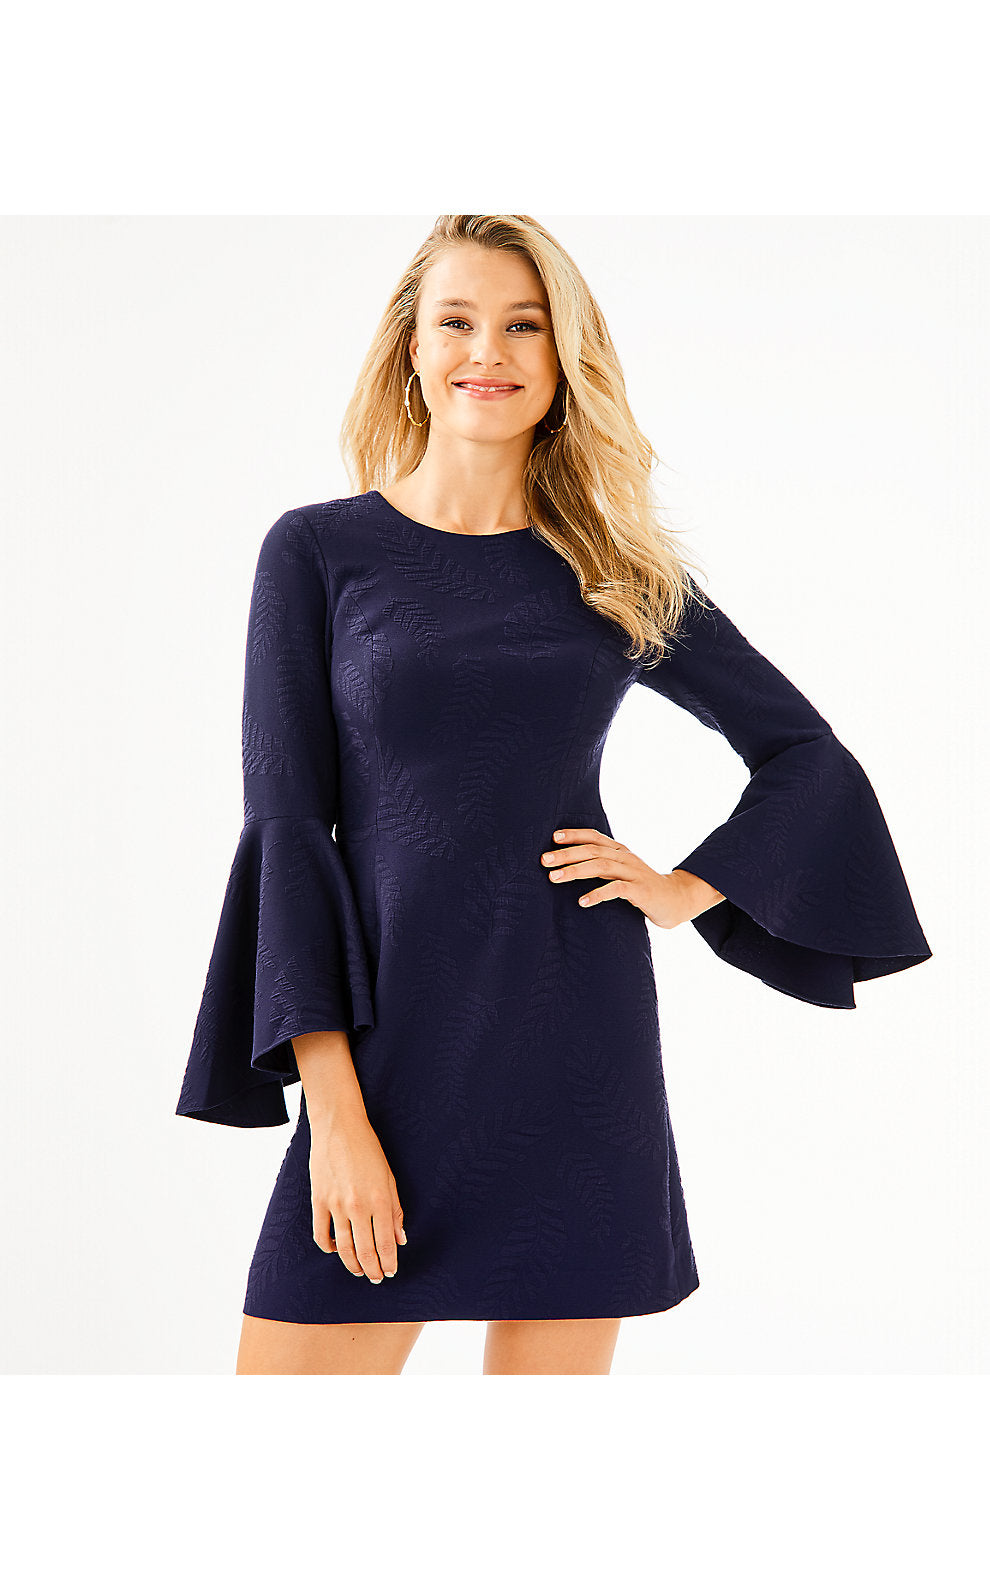 KAYLA STRETCH DRESS TRUE NAVY           FERN PUCKER JACQUARD